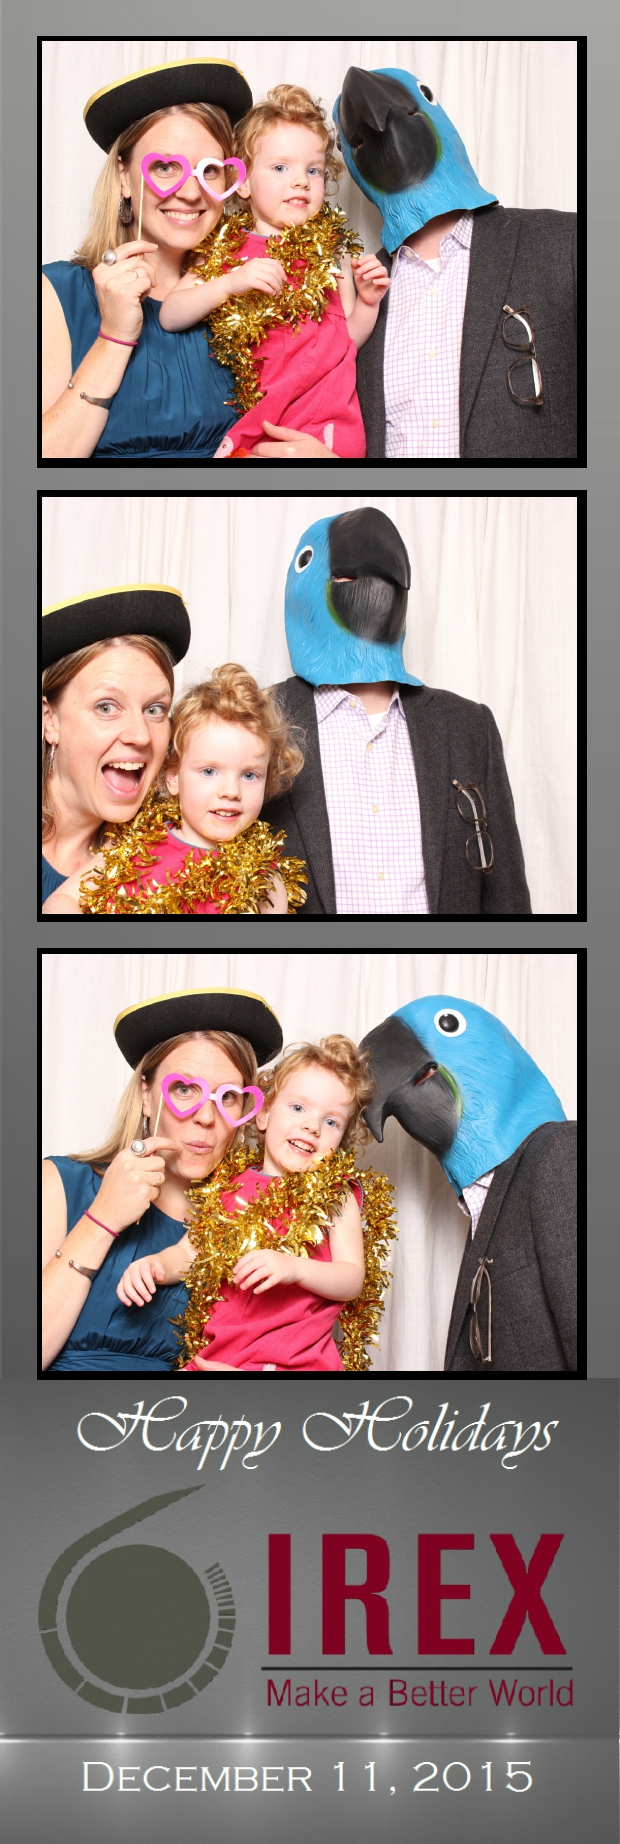 Guest House Events Photo Booth Strips IREX (43).jpg